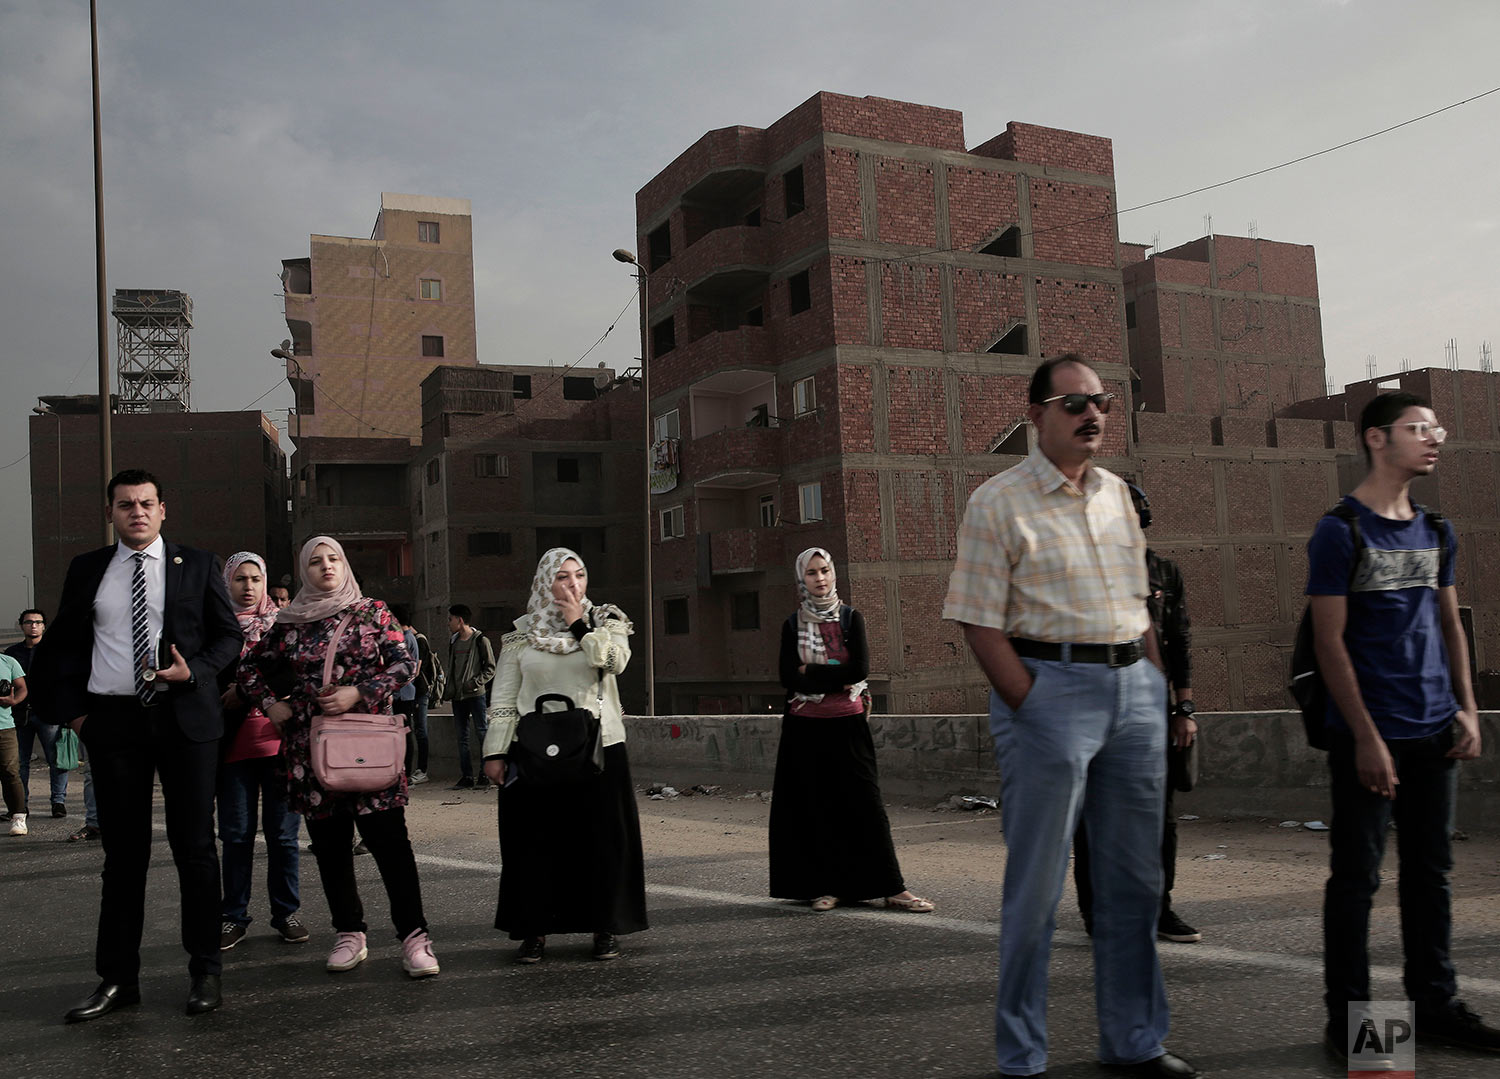 In this Oct. 23, 2018 photo, people wait for a bus on the ring road early morning, in Cairo, Egypt. (AP Photo/Nariman El-Mofty)